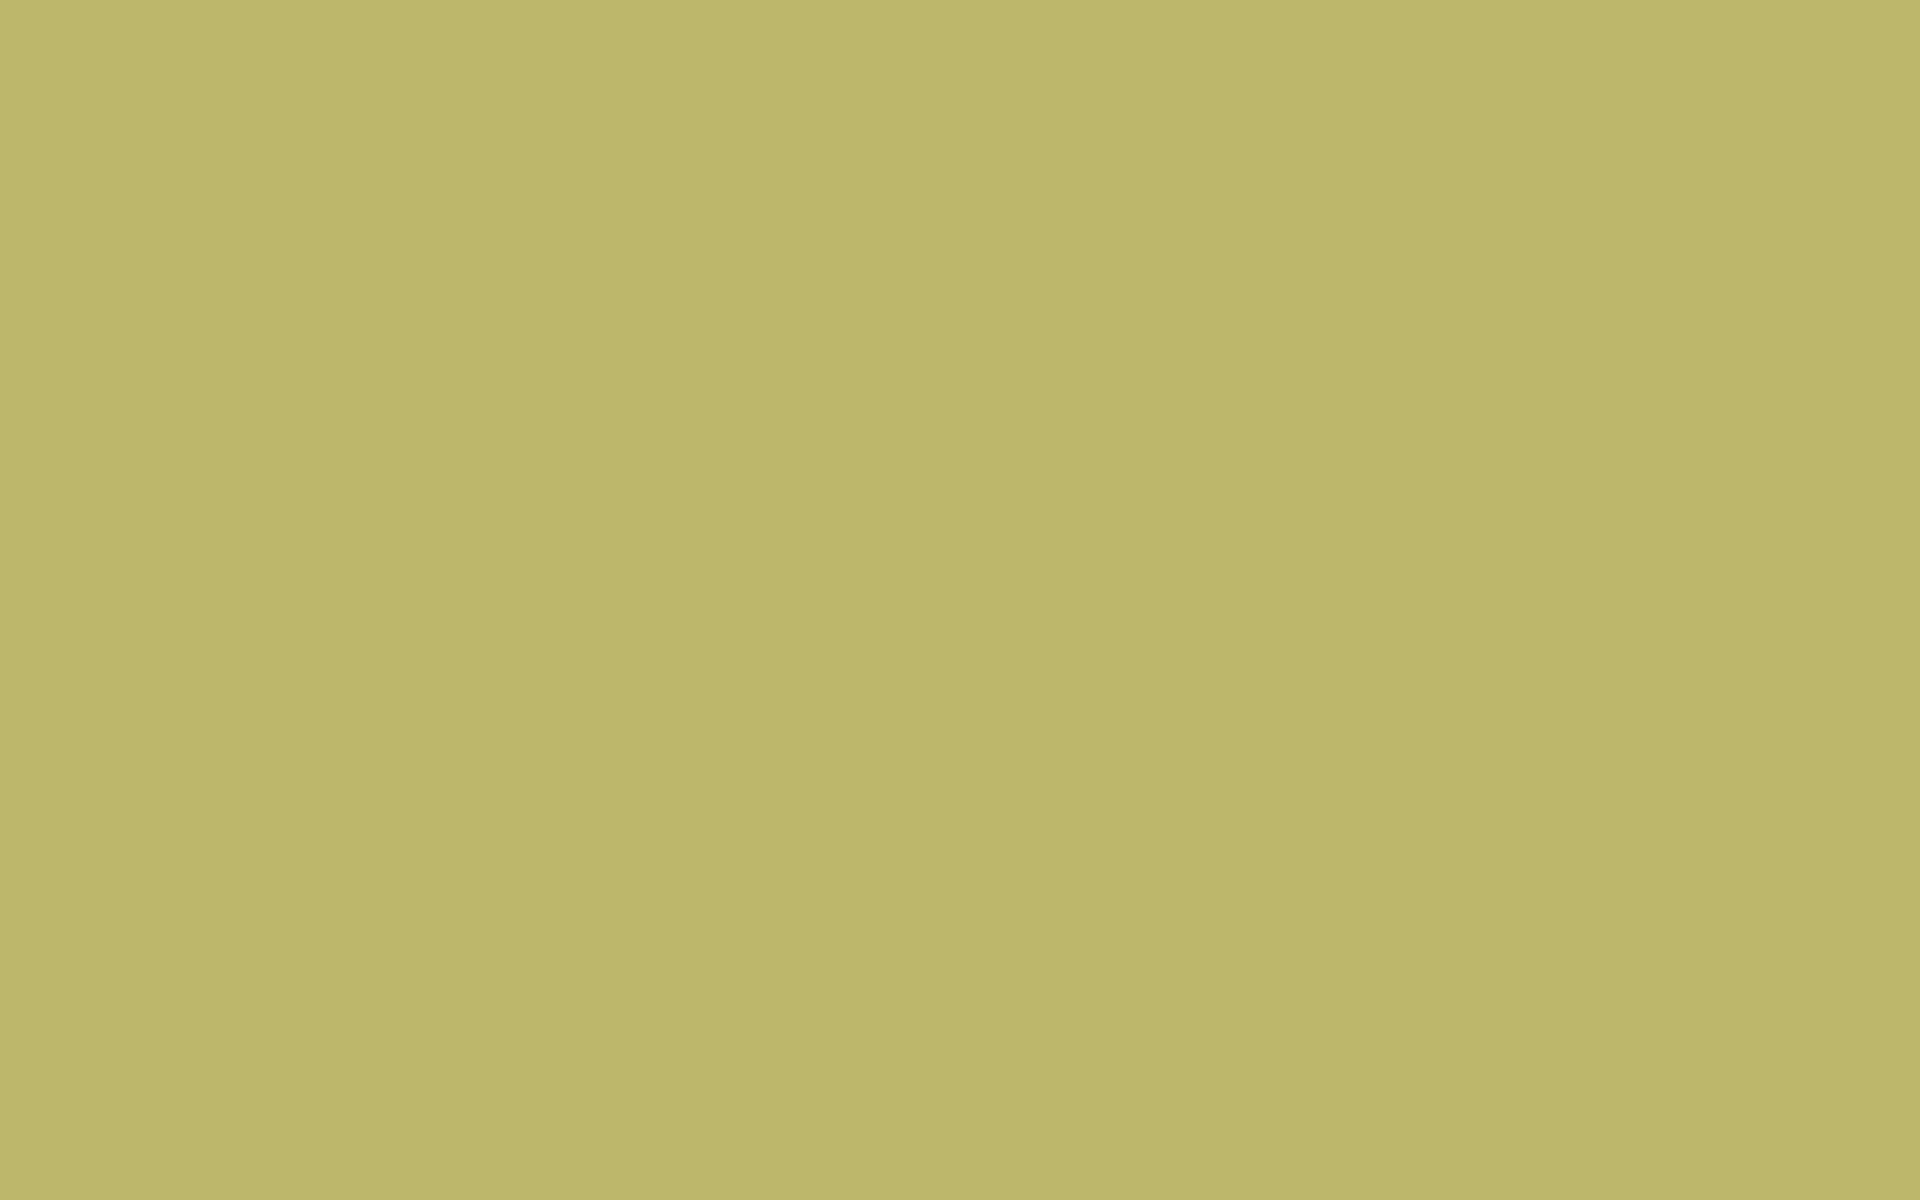 1920x1200 Dark Khaki Solid Color Background